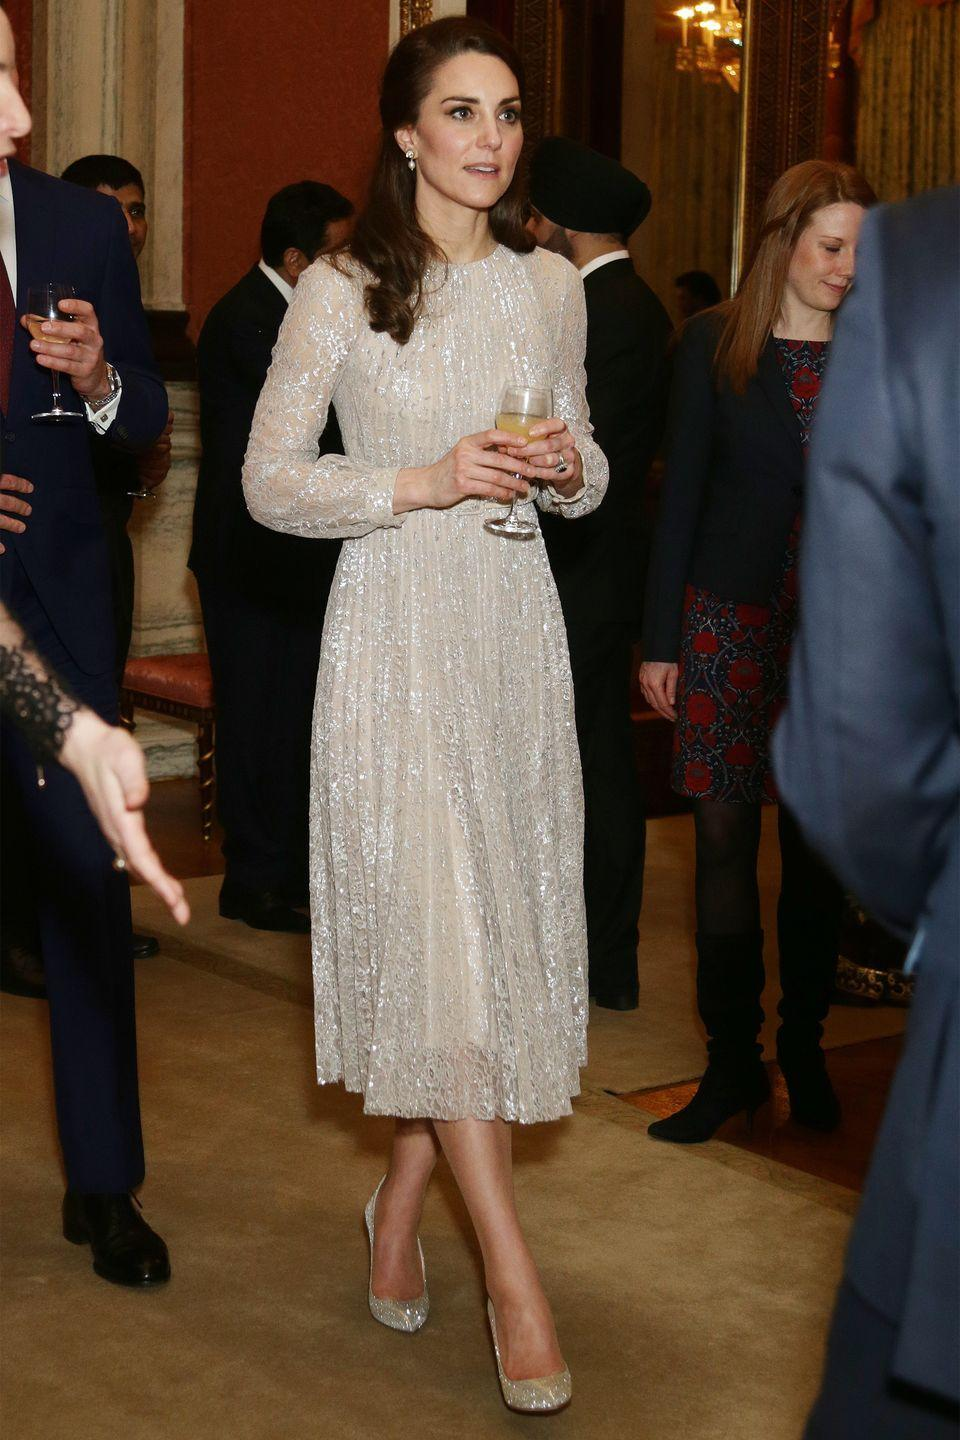 <p>The Duchess wears a shimmering, champagne-colored Erdem dress with dangling pearl earrings and glittery pumps at Buckingham Palace.</p>